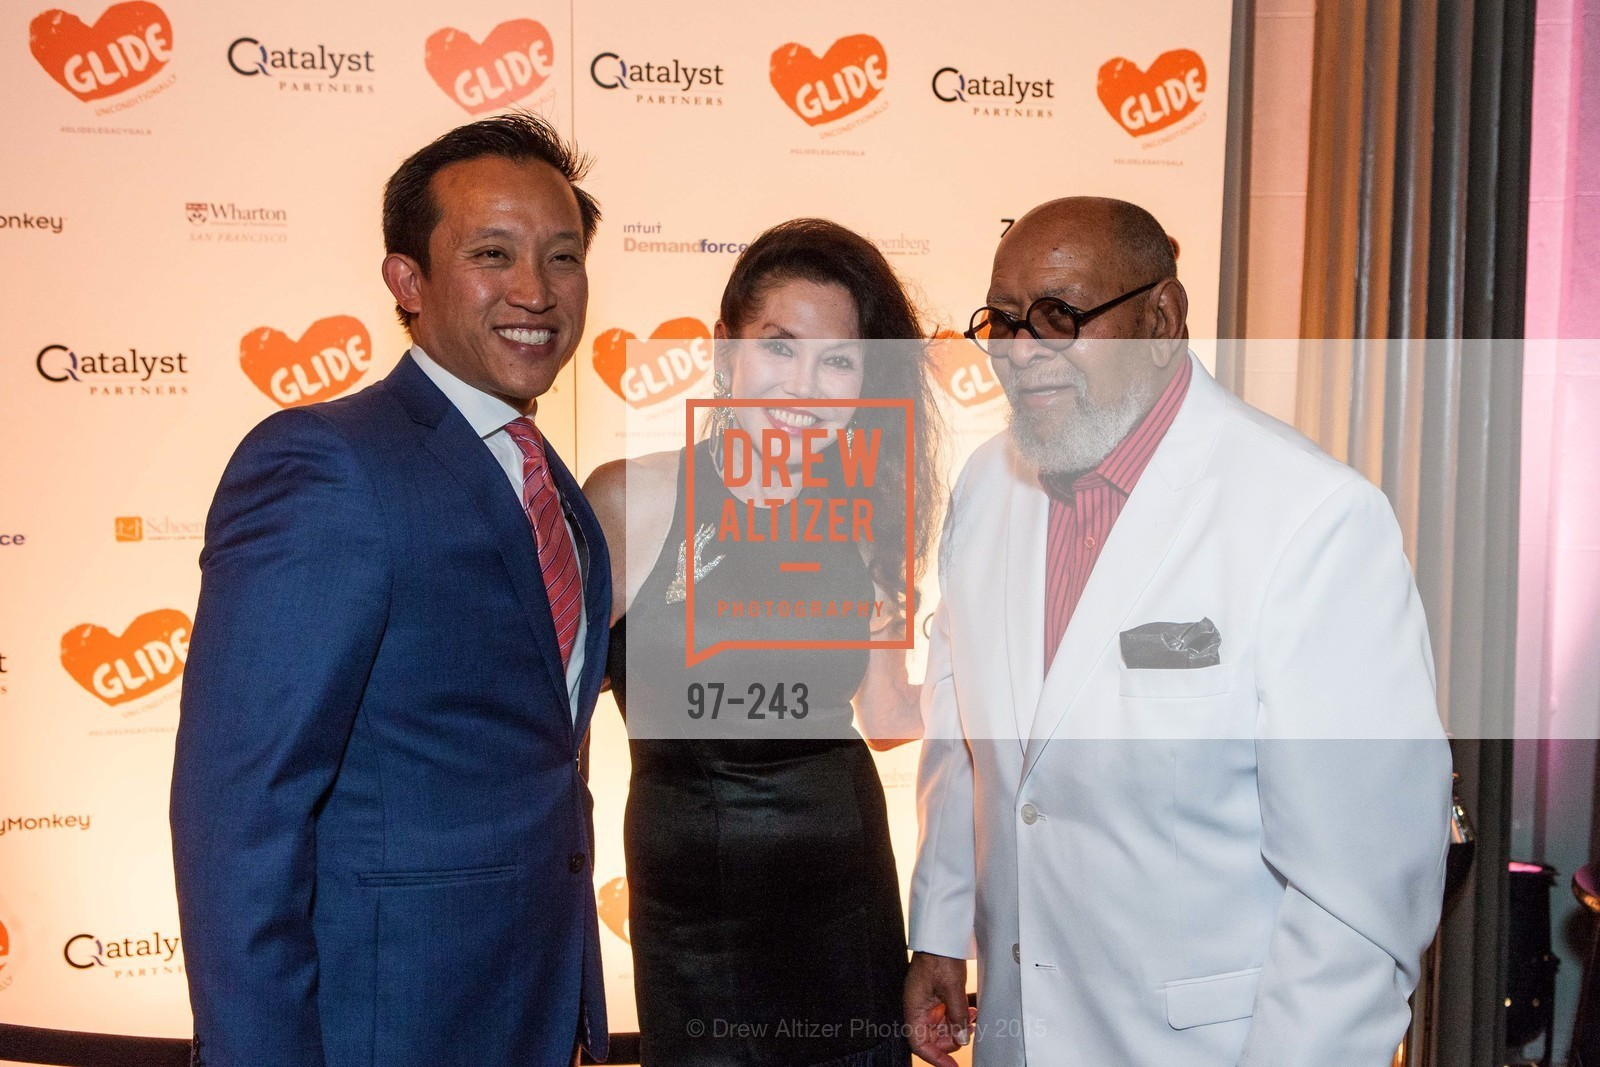 David Chiu, Janice Mirikitani, Cecil Williams, 6TH ANNUAL GLIDE LEGACY GALA, The Regency Ballroom. 1300 Van Ness Ave, August 22nd, 2015,Drew Altizer, Drew Altizer Photography, full-service agency, private events, San Francisco photographer, photographer california